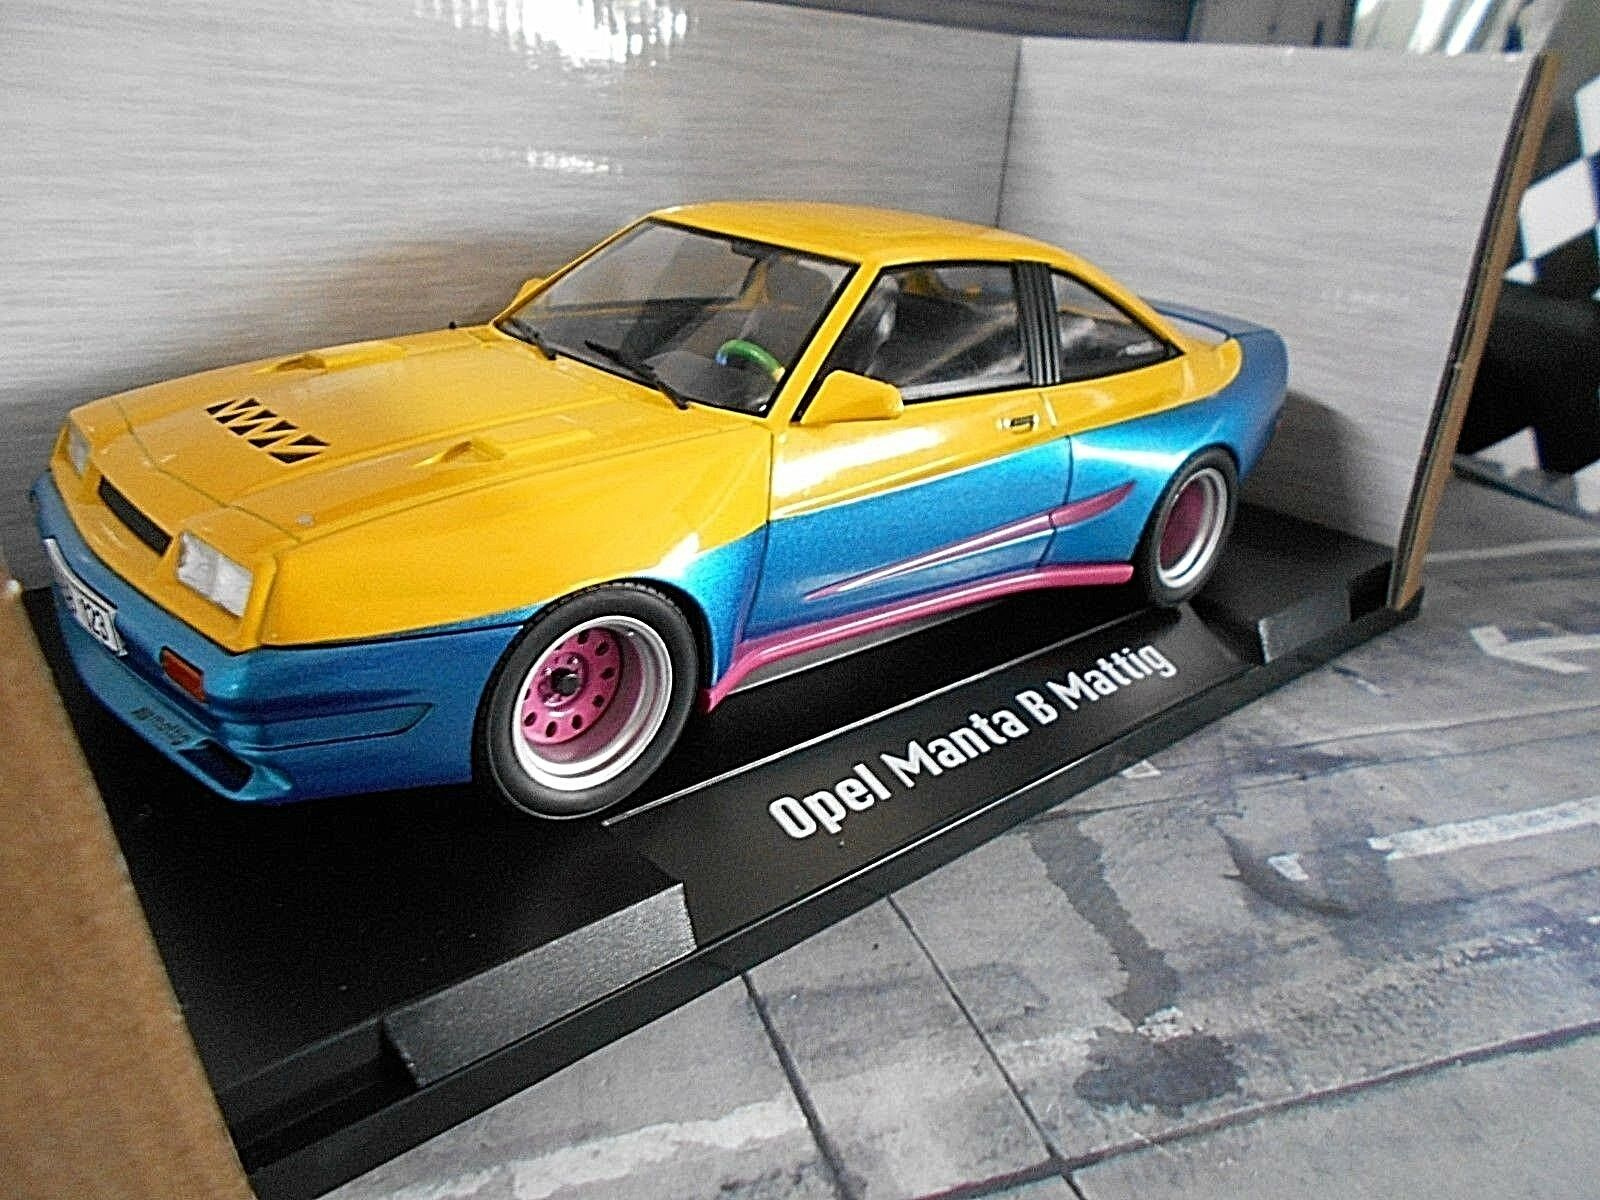 Opel Manta B 400 400 400 Mattig breitbau tuning TV Cine Movie Manni 1991 microg 1 18 8fed3d